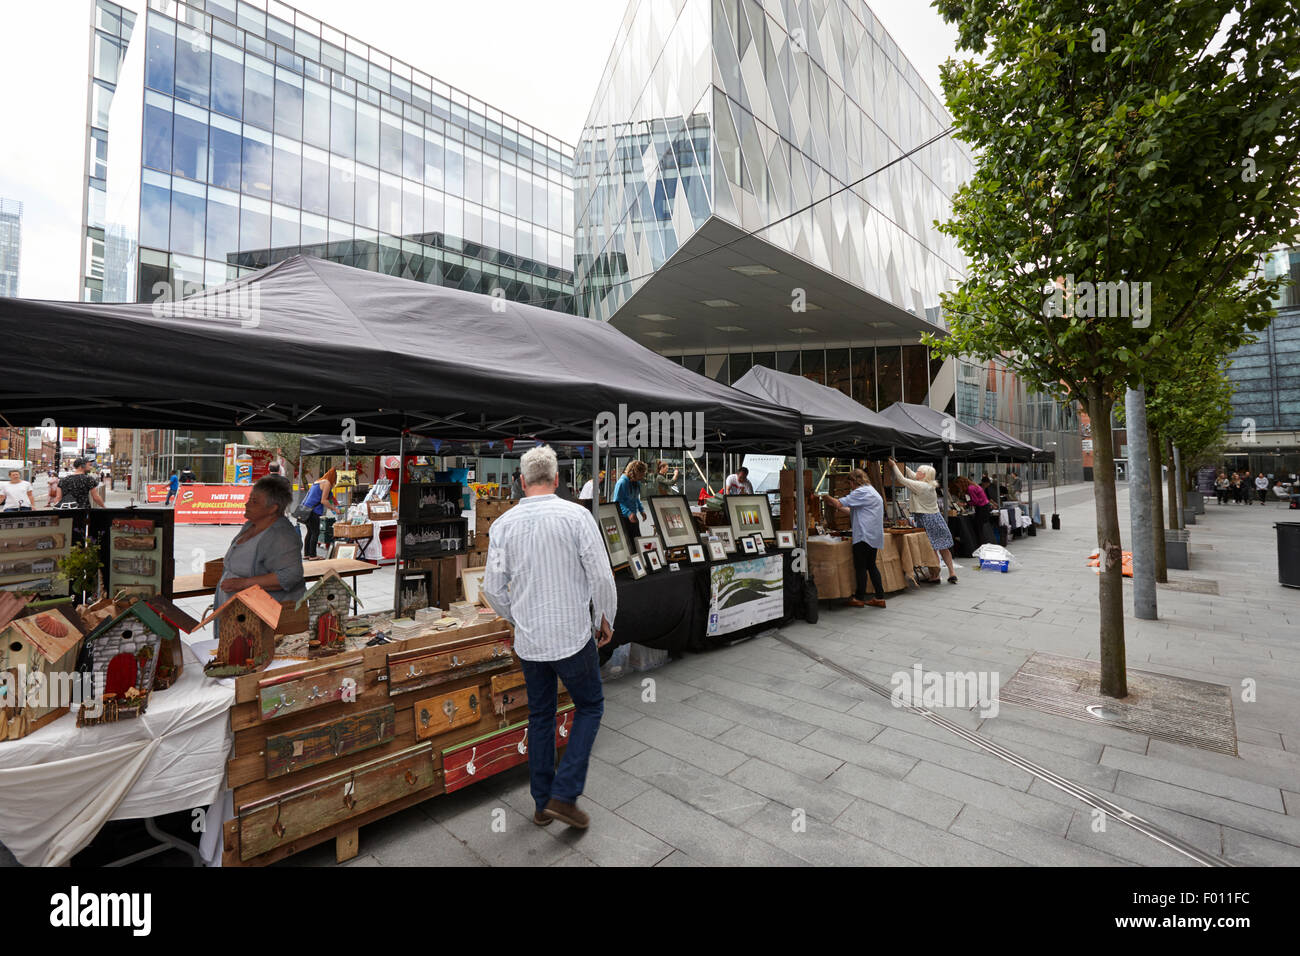 saturday artisan food and craft market in Spinningfields Manchester England UK - Stock Image